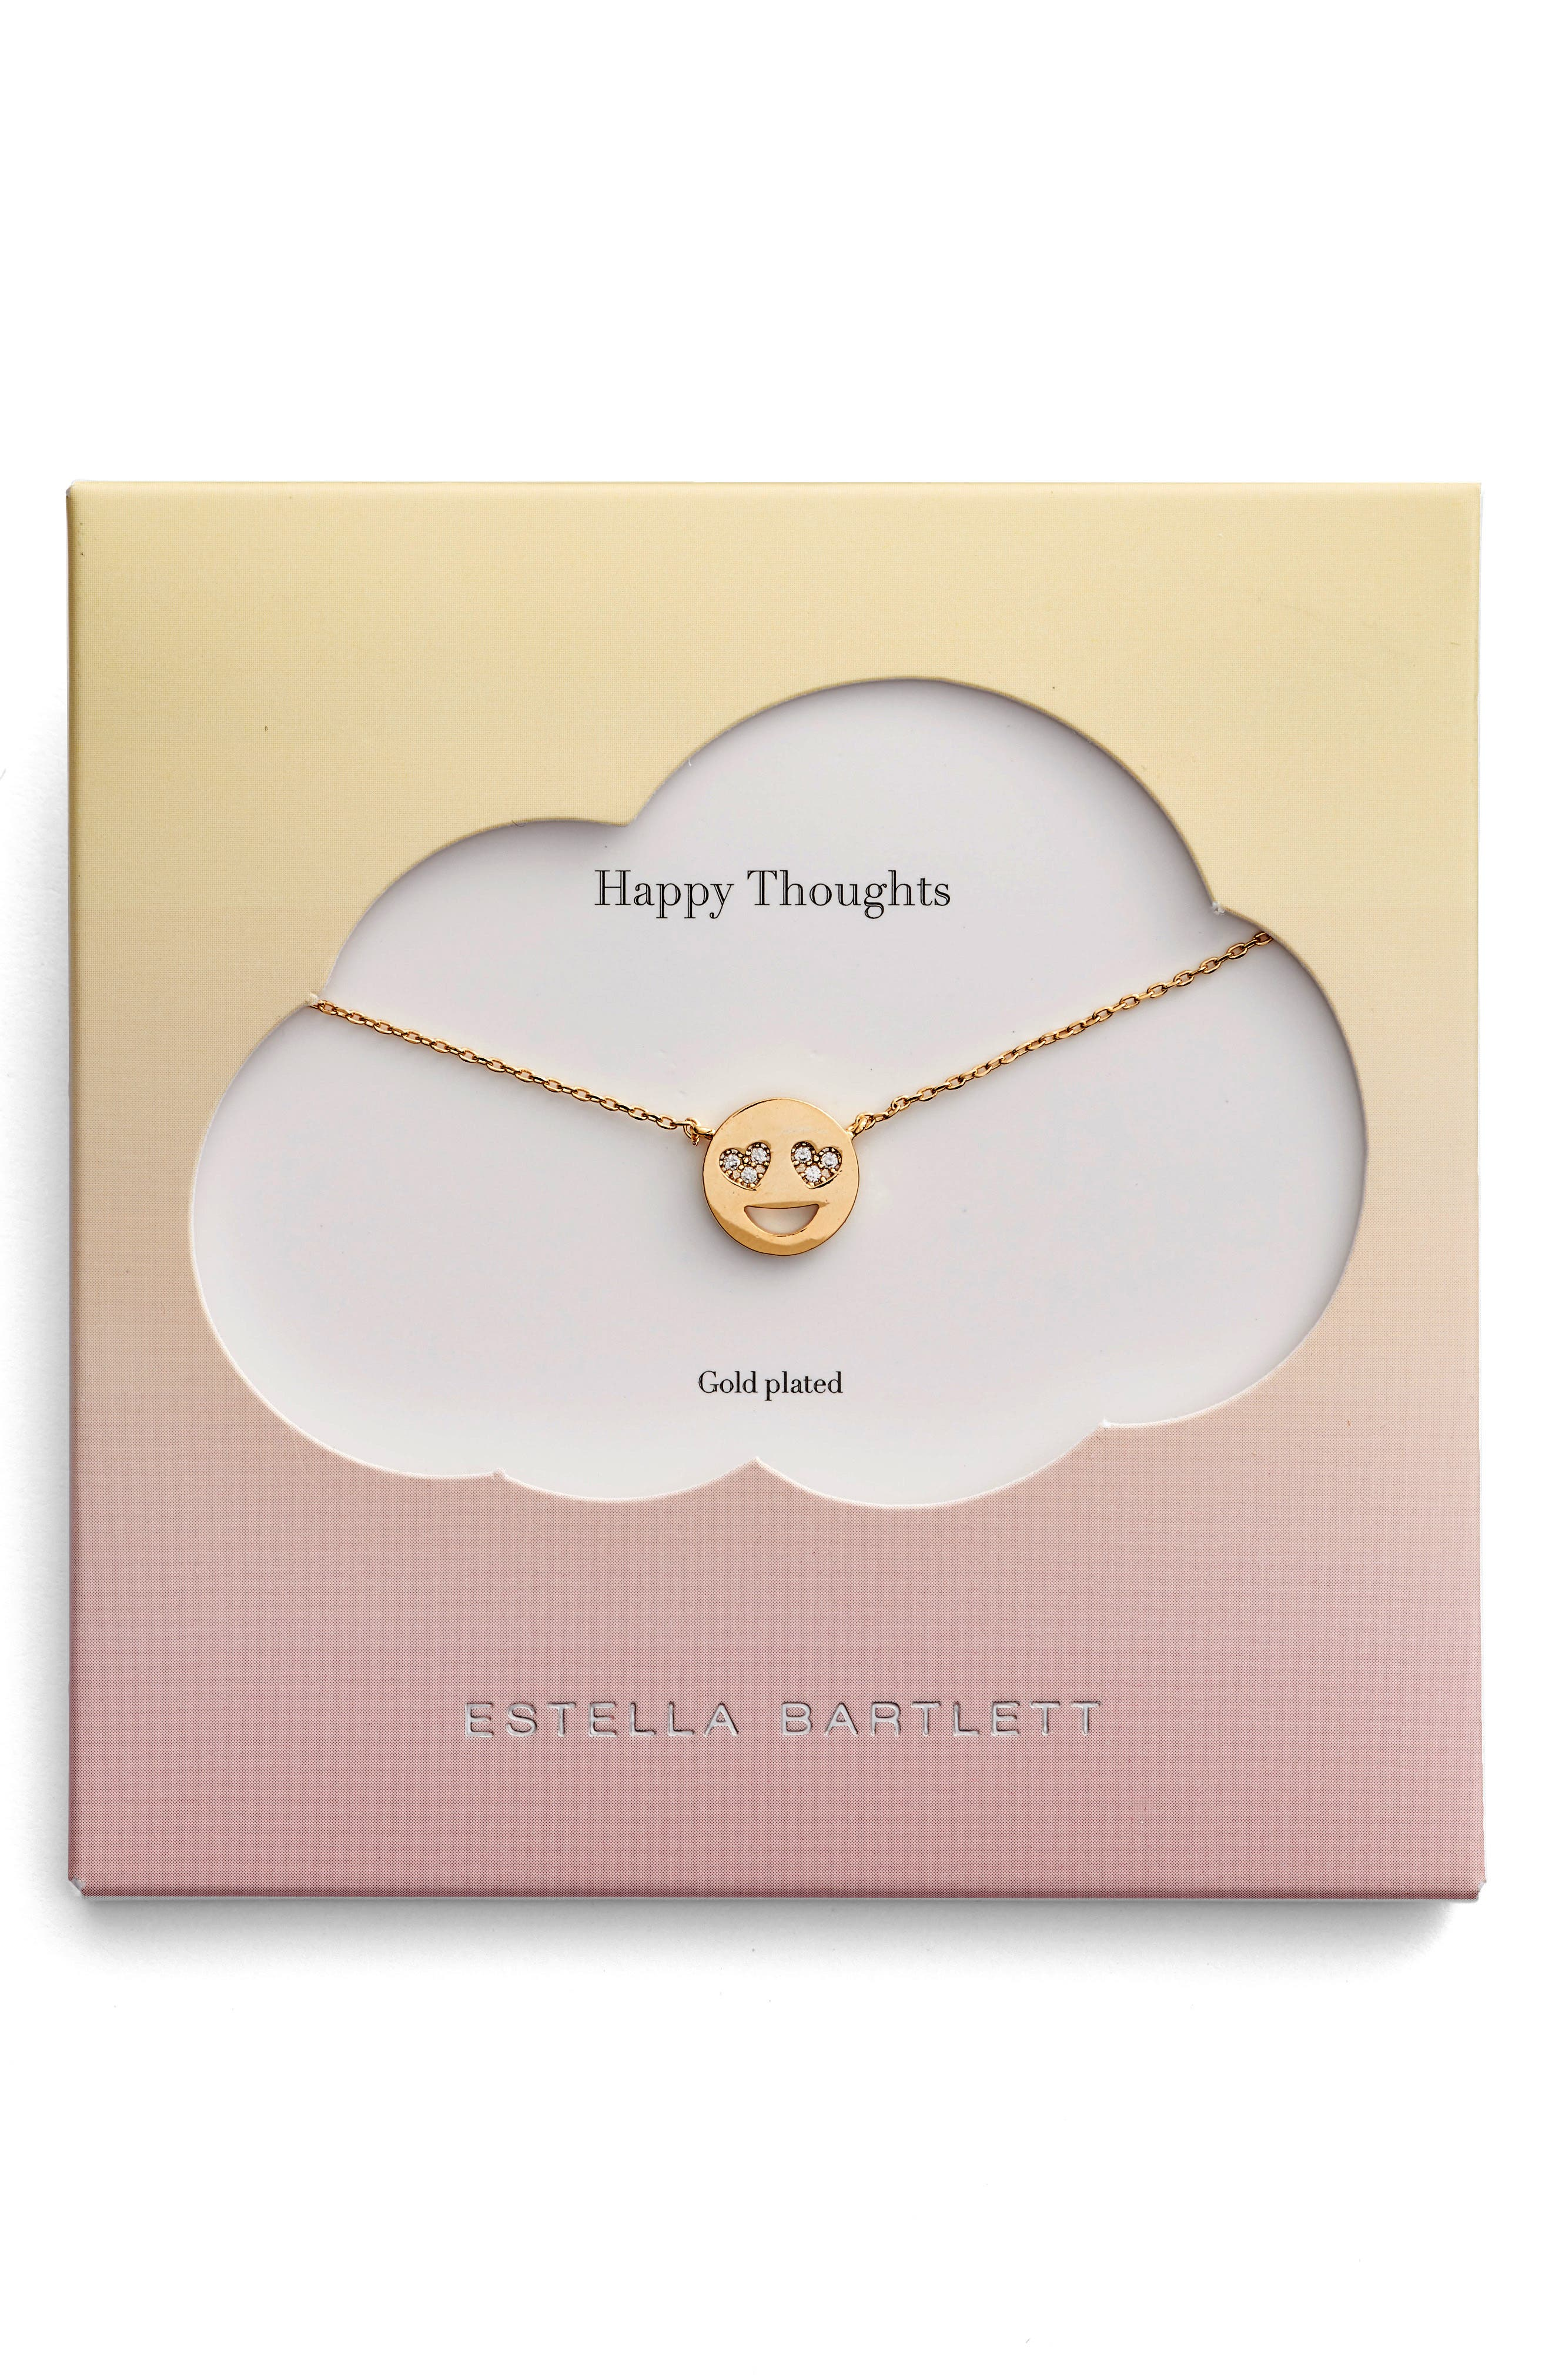 Happy Thoughts Emoji Necklace,                             Main thumbnail 1, color,                             Gold